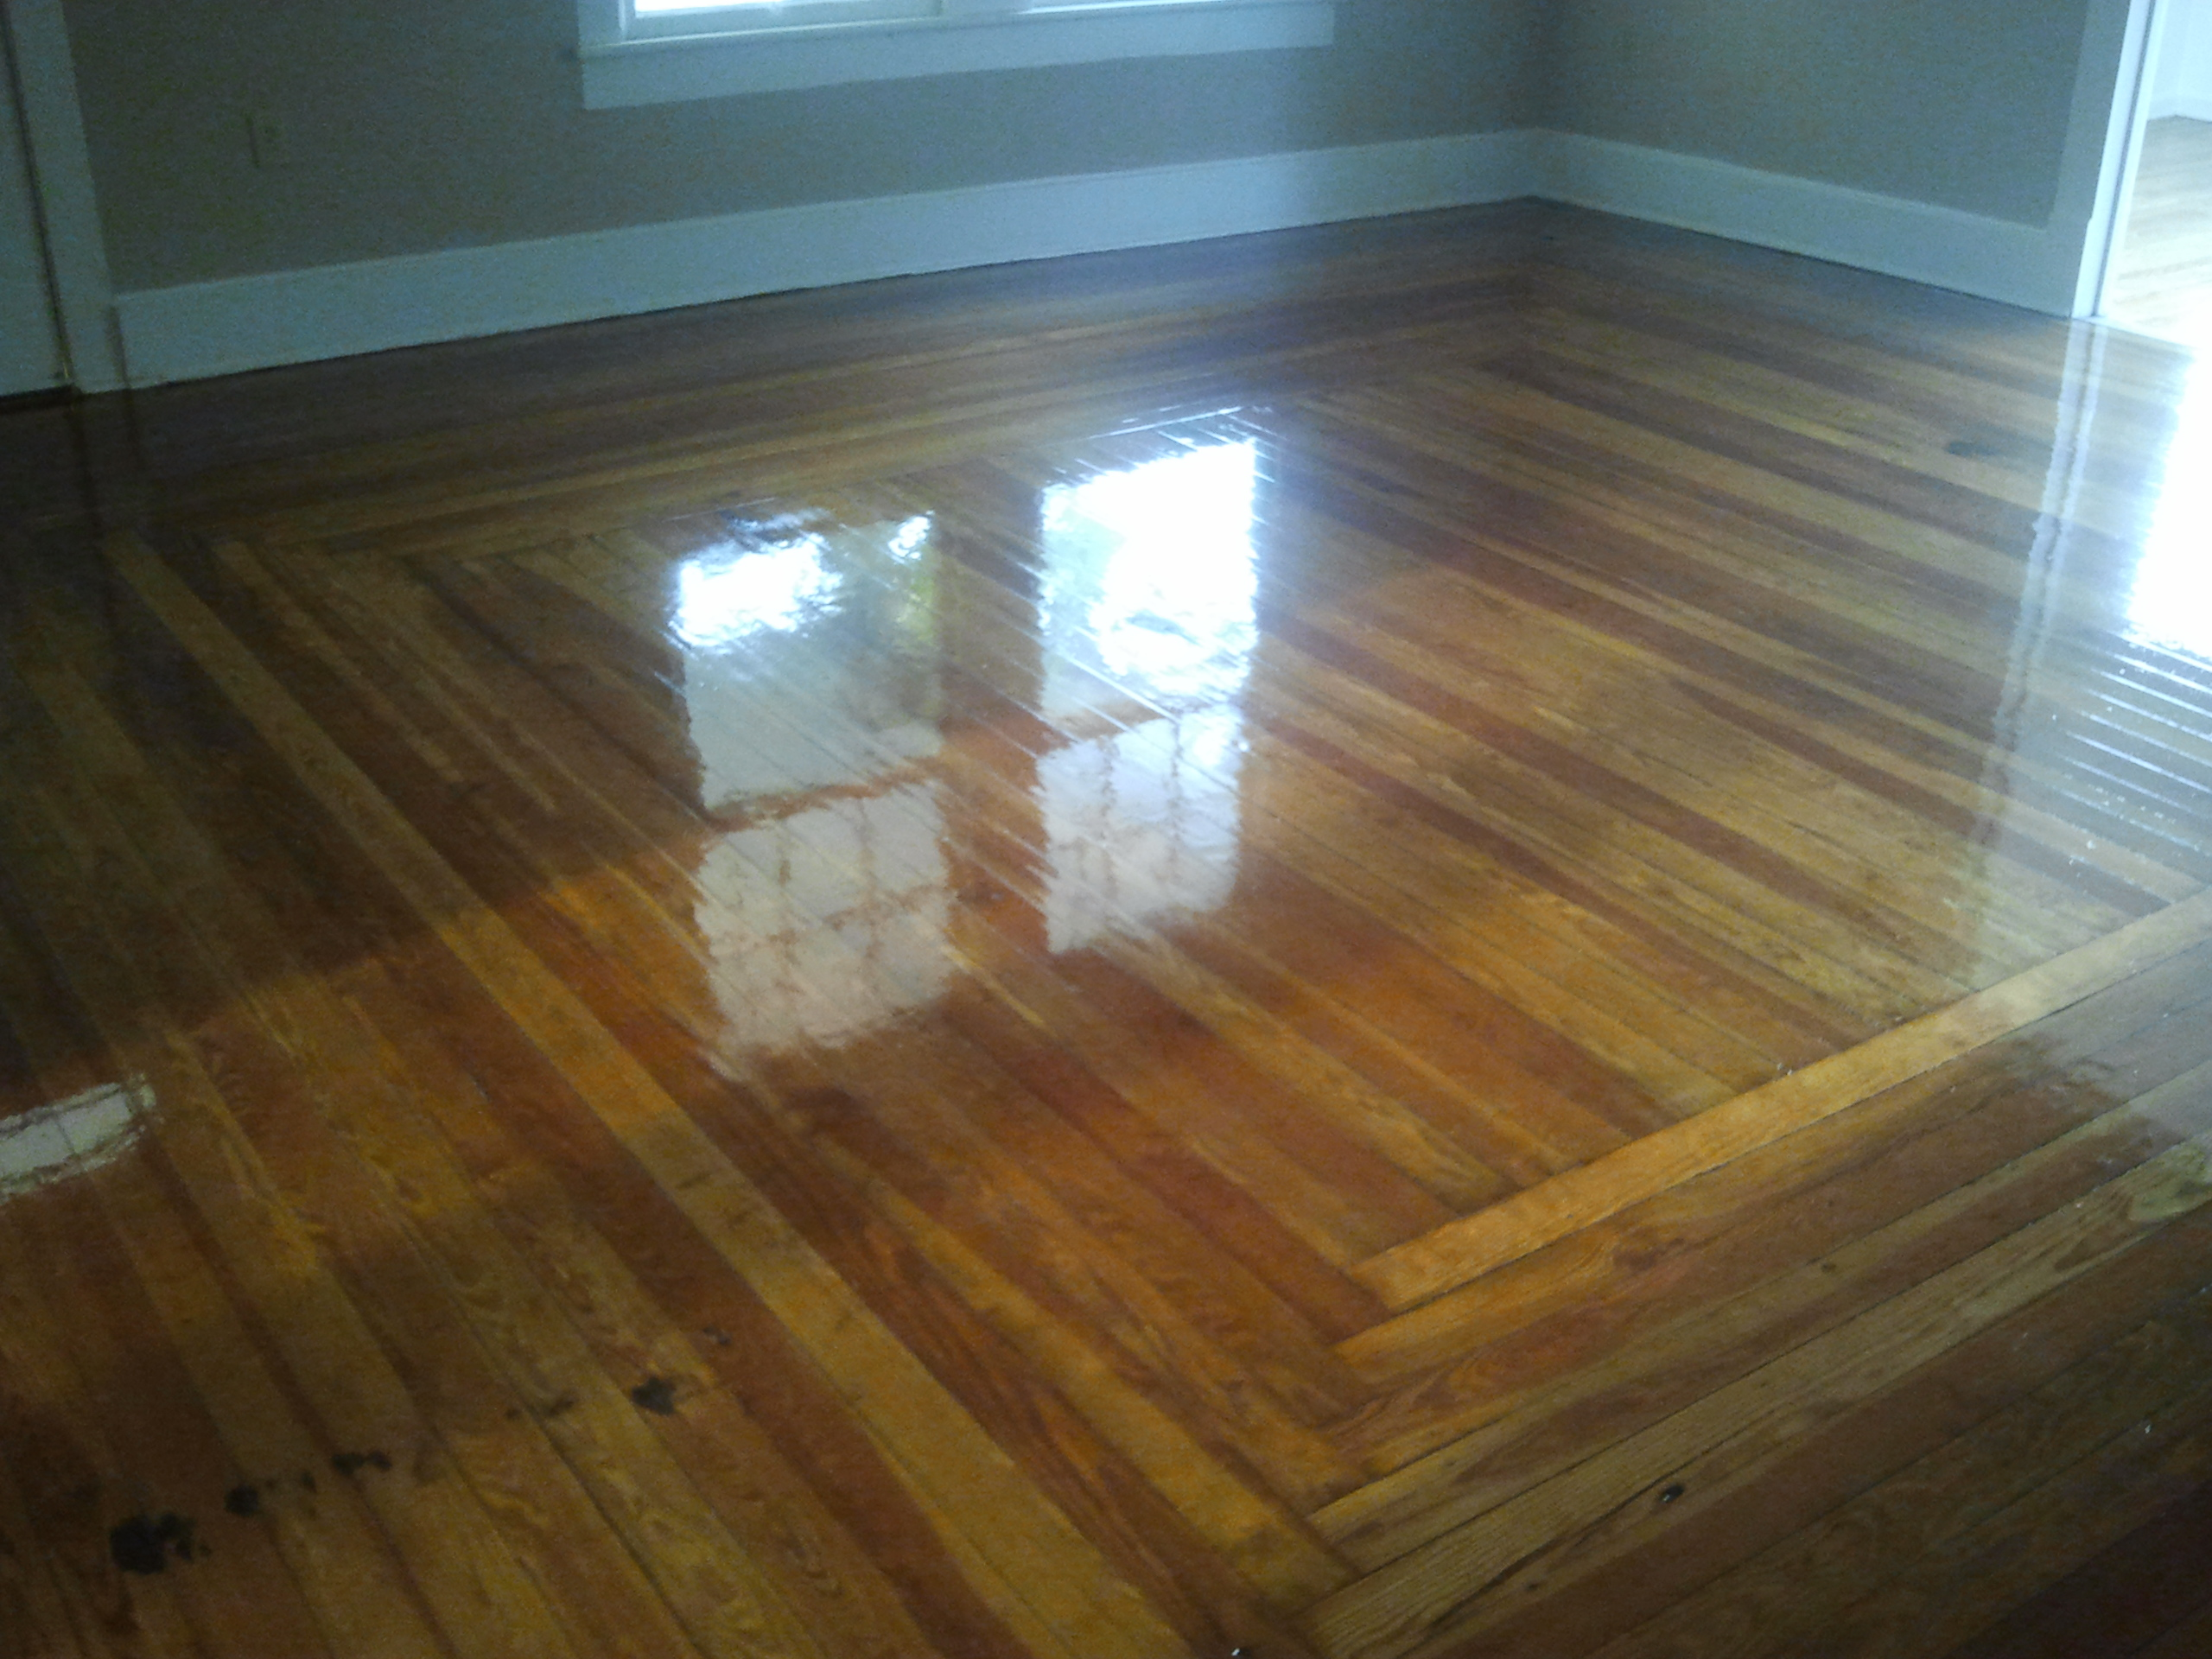 Very Best Quality Wood Flooring Tile And Stone In Jacksonville Florida Rp36